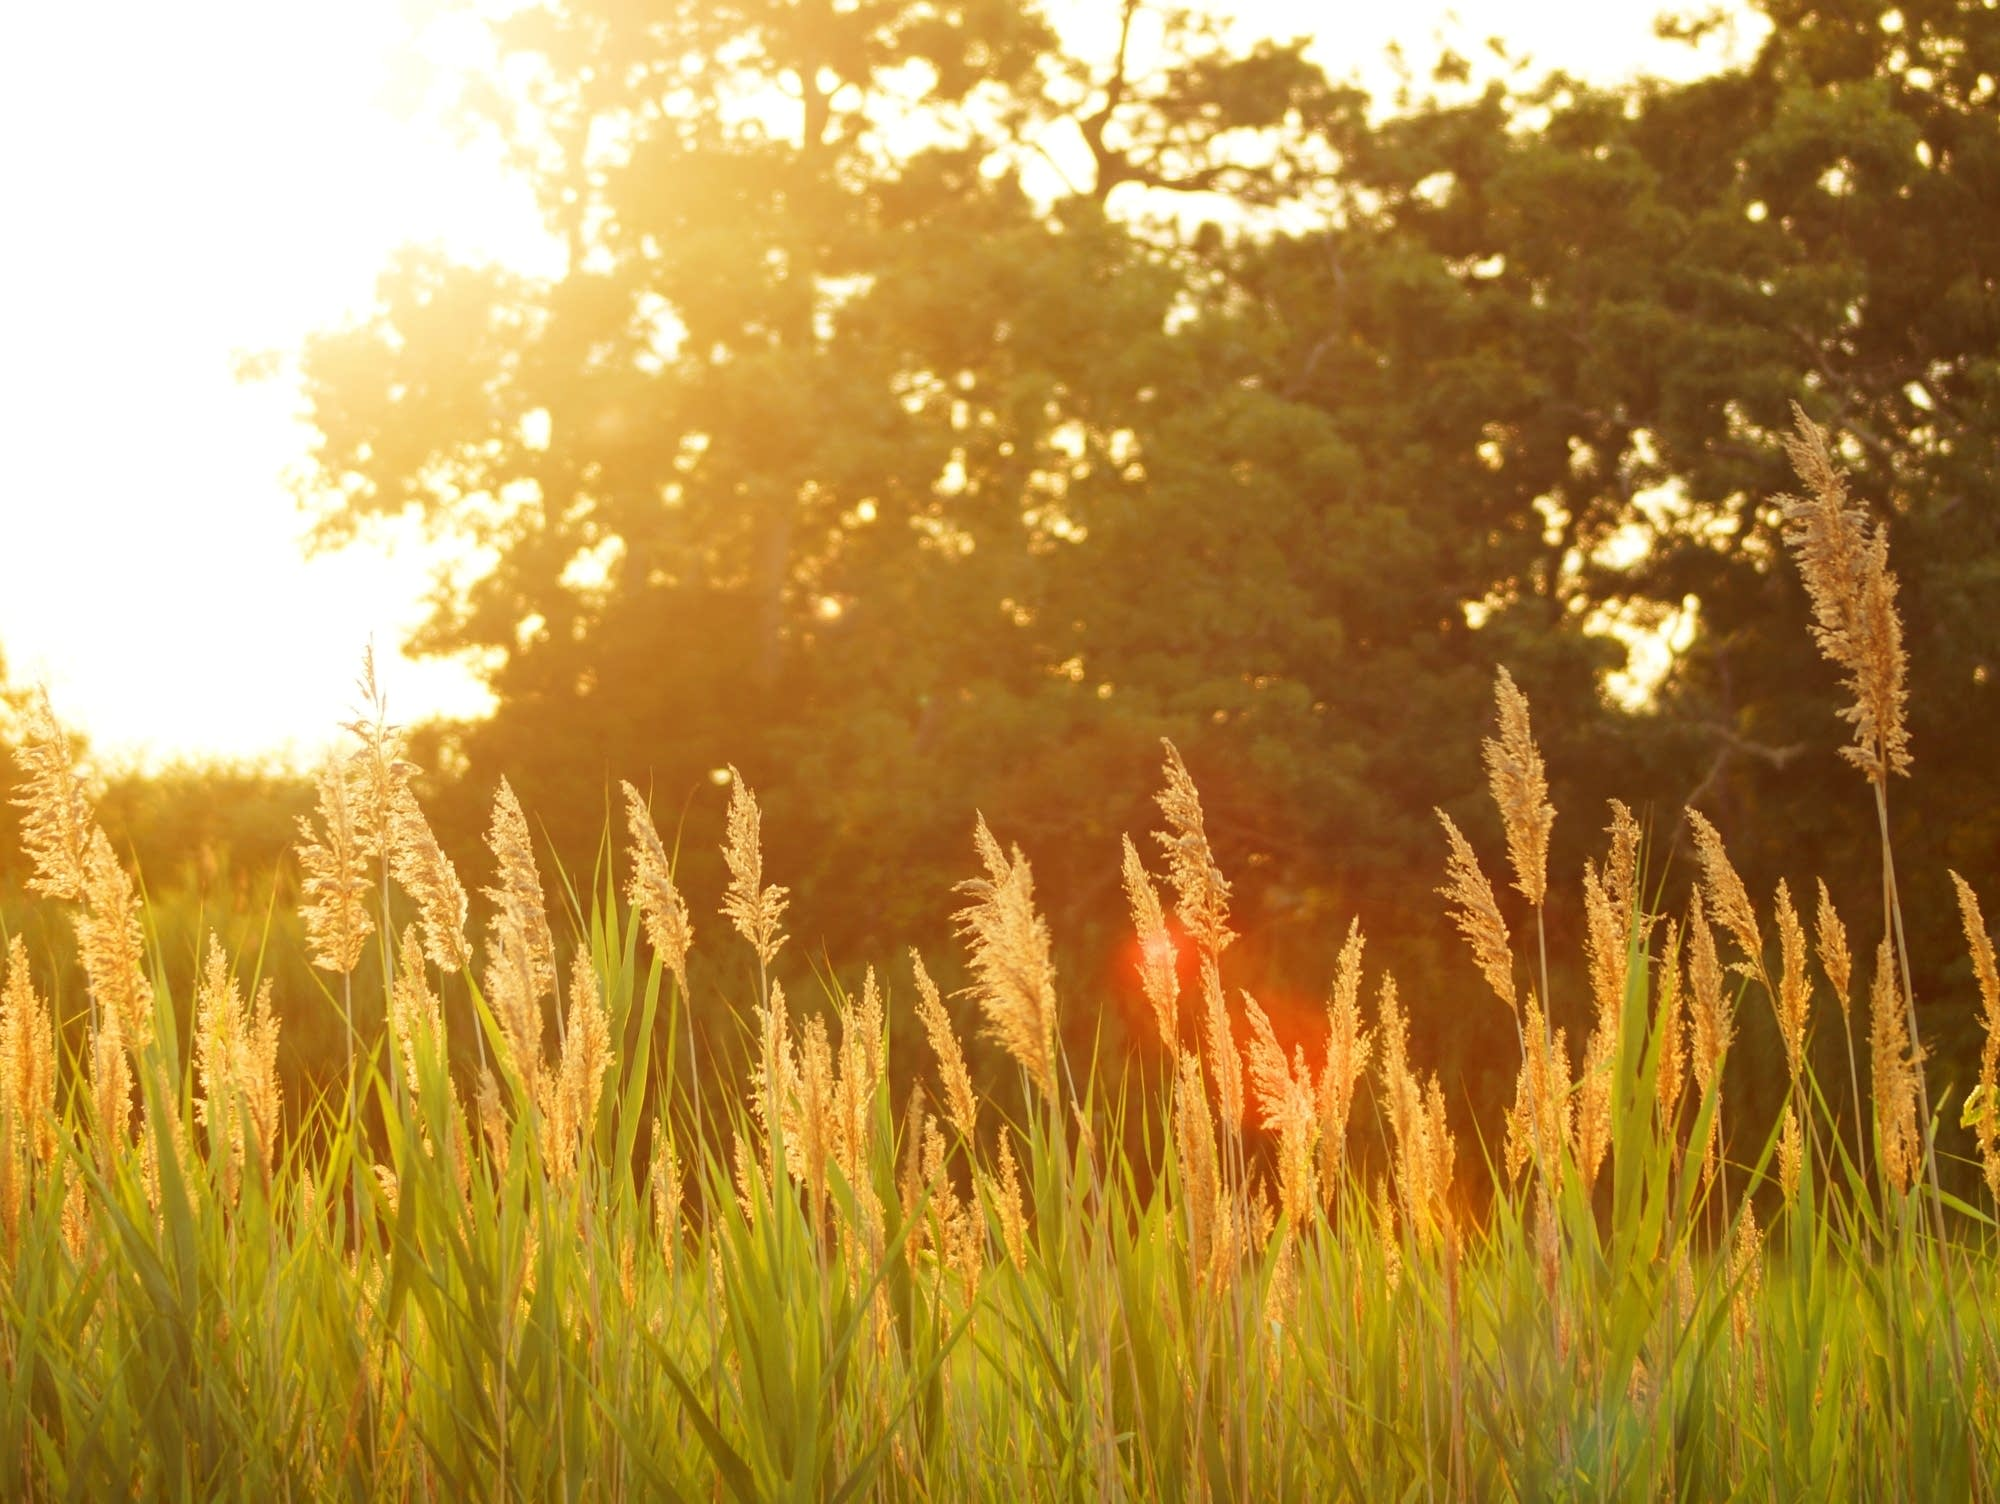 Field of tall grasses at sunset